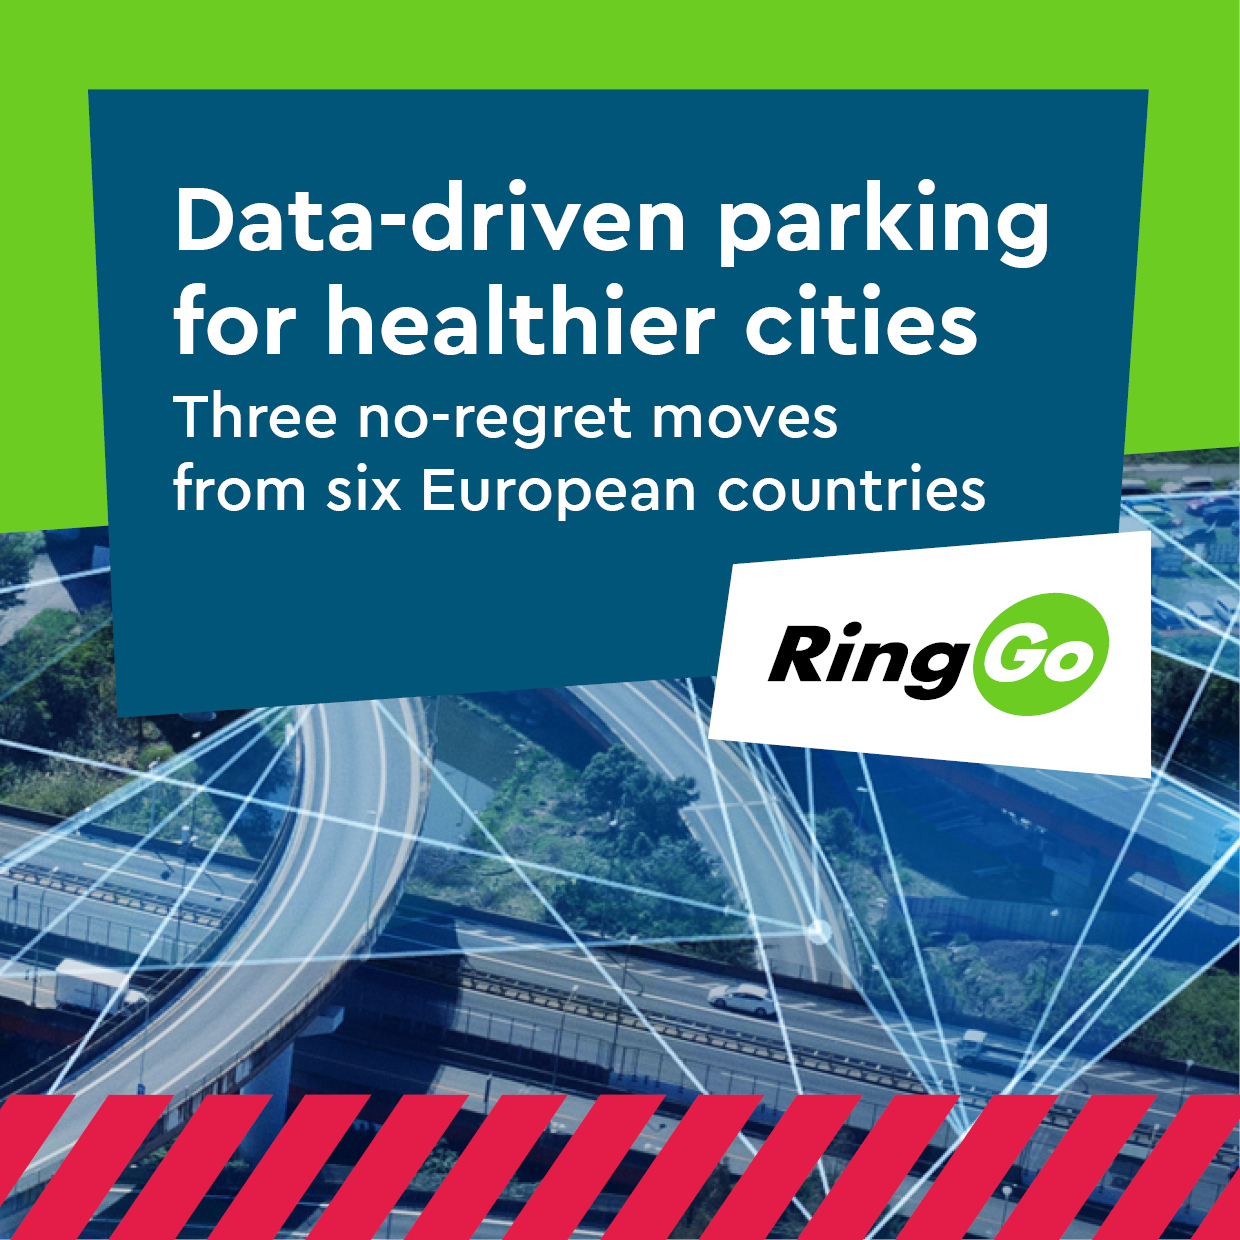 Data-driven parking for healthier cities